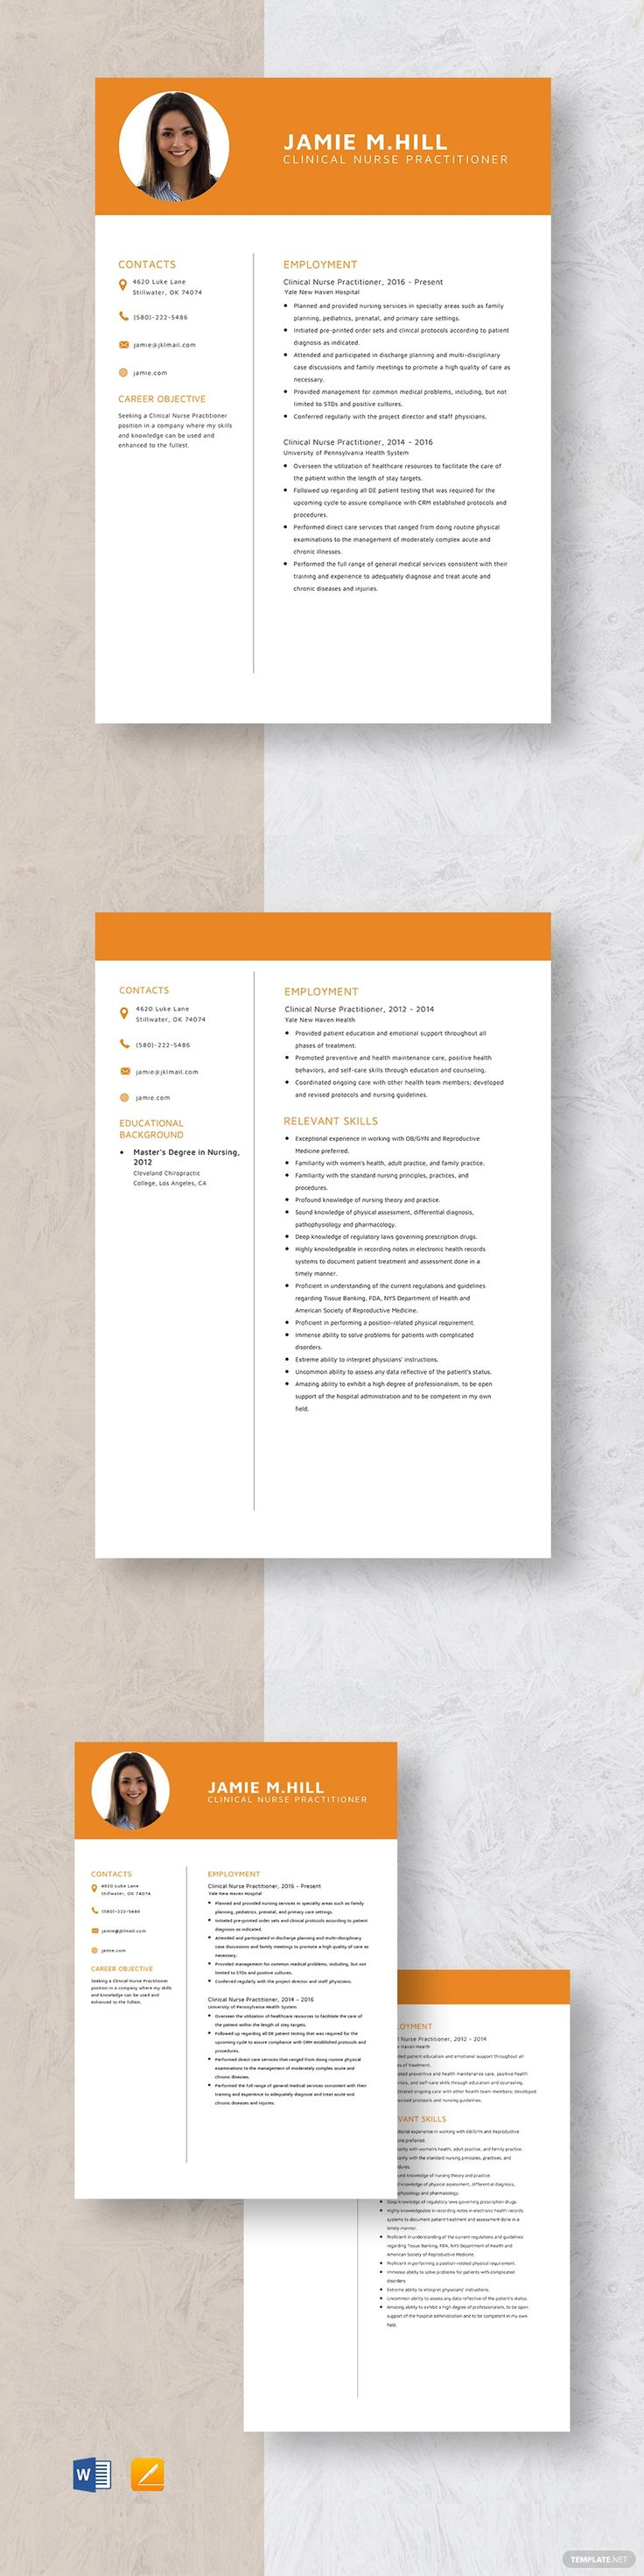 Clinical nurse practitioner resume template ad paid